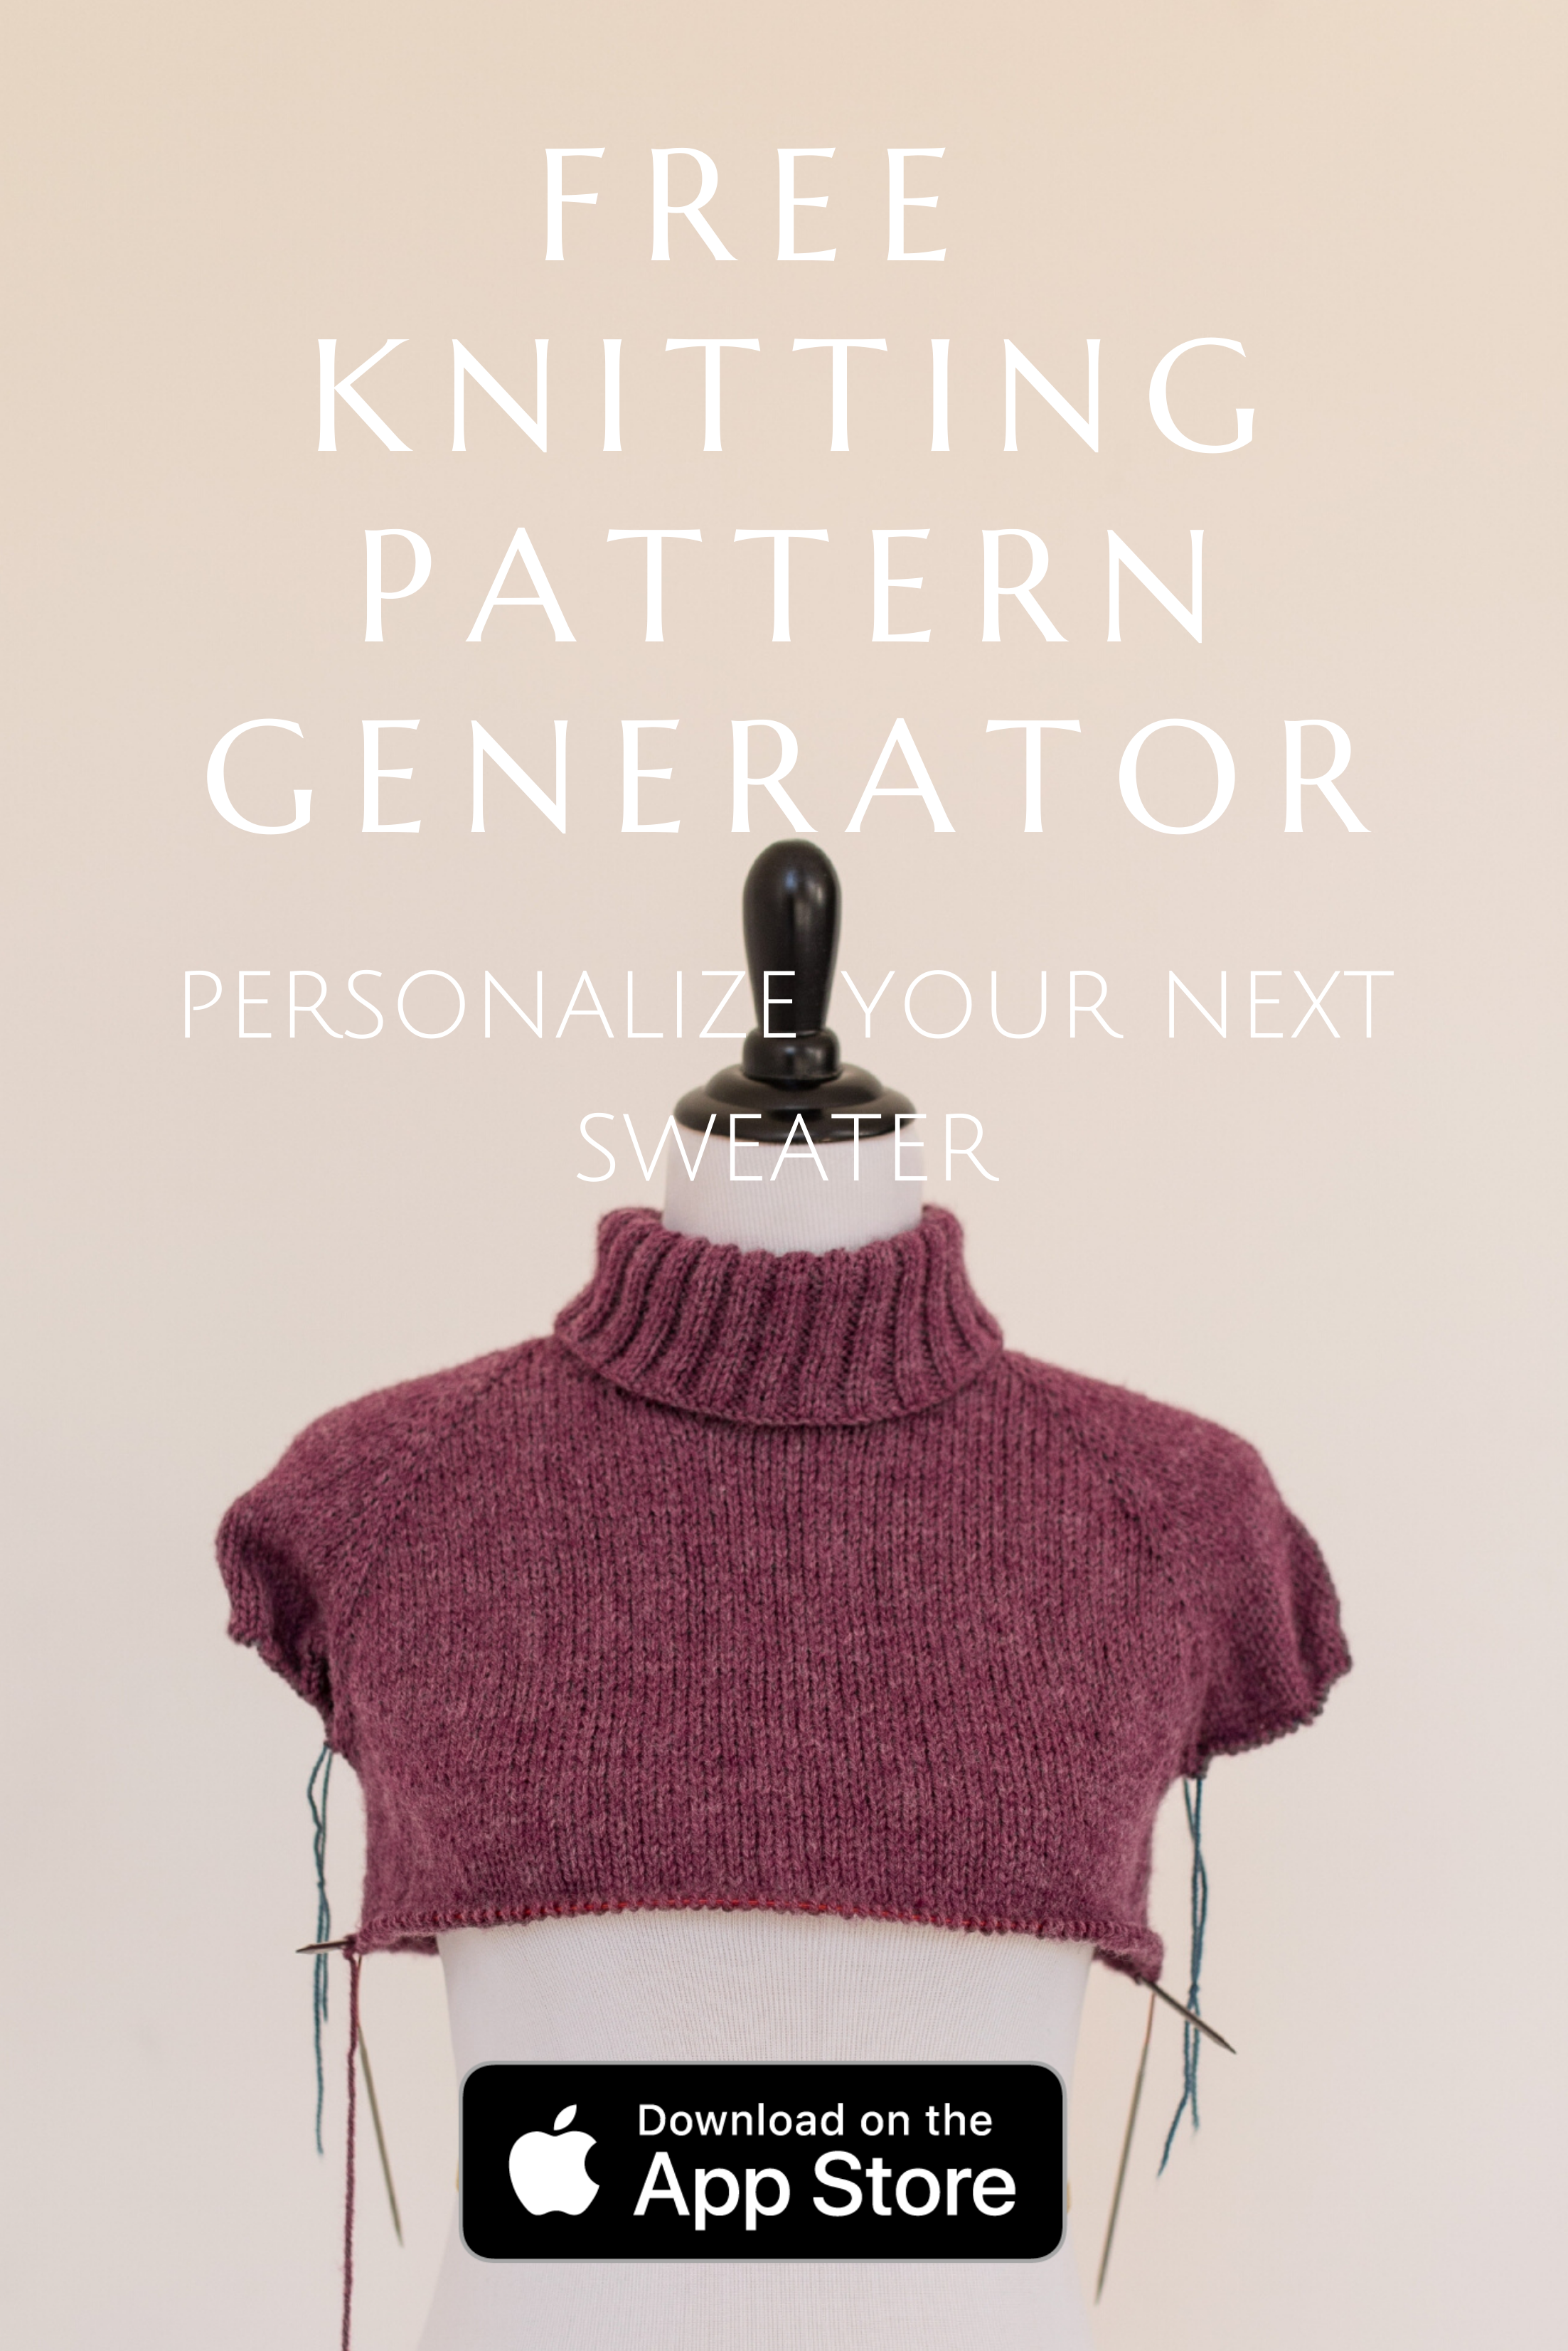 Personalize Your Next Sweater With The Free Knitting Pattern